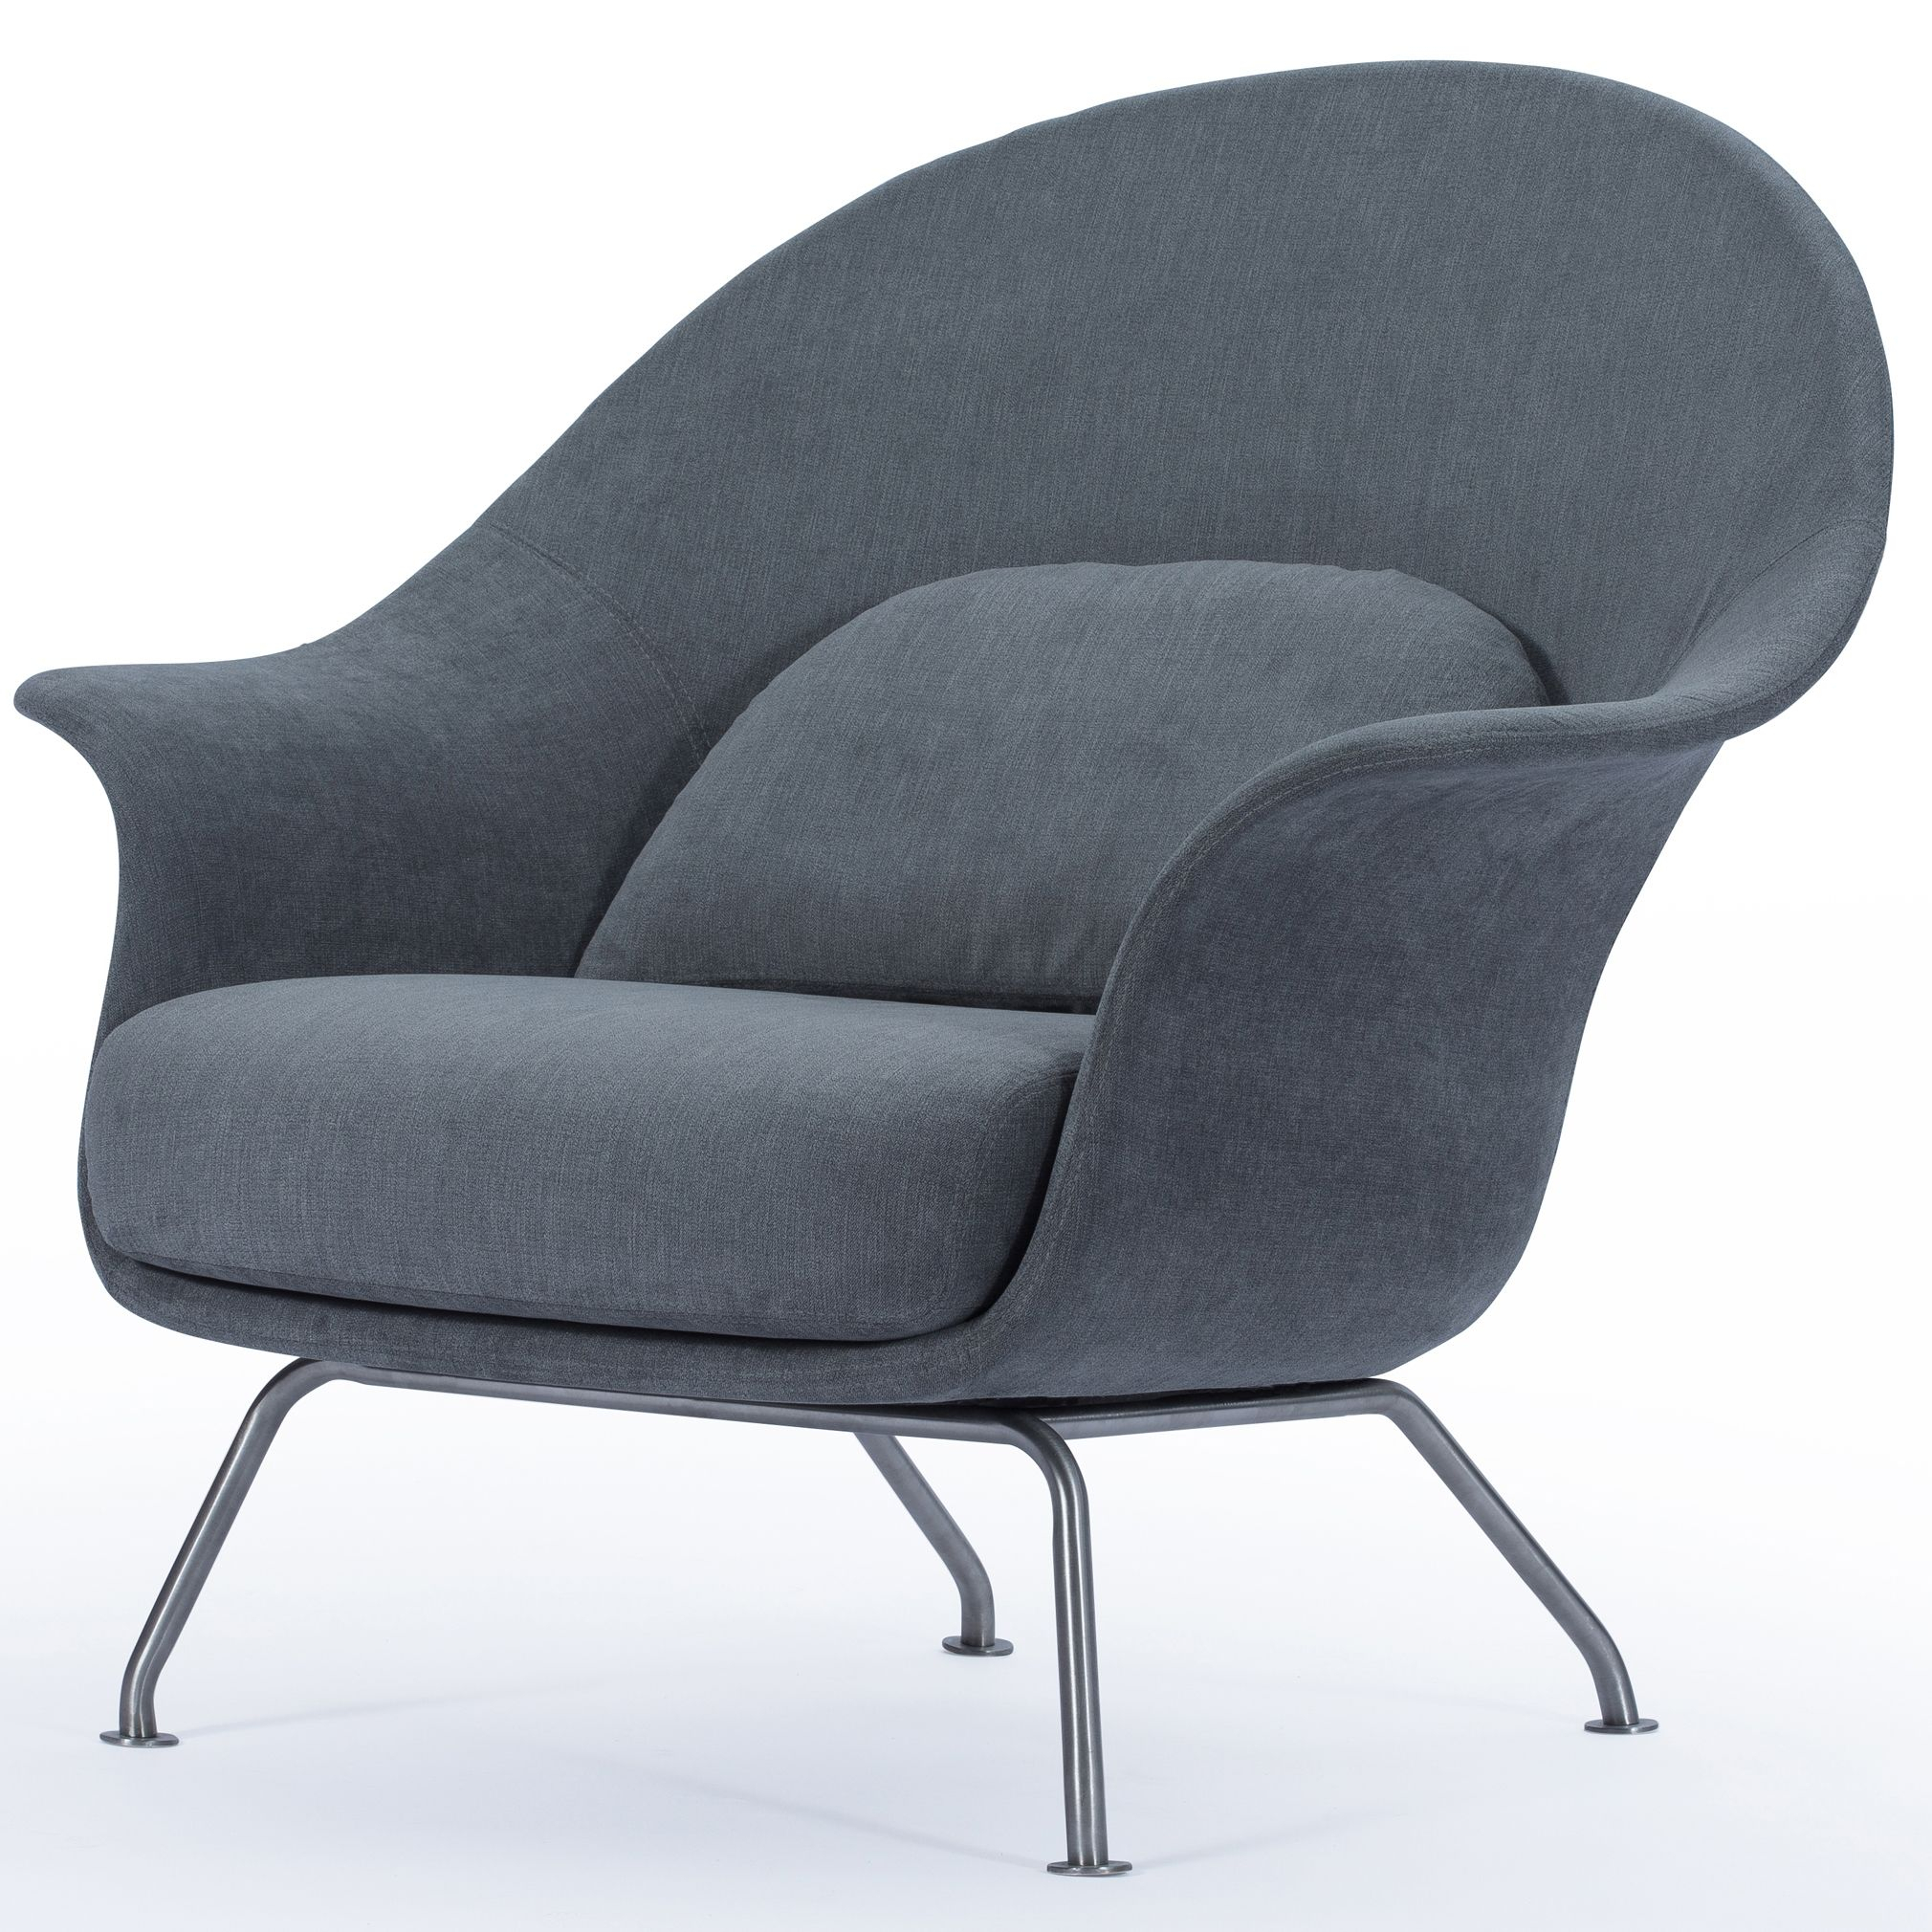 Chiara Kd Fabric Accent Chair Brushed Stainless Steel Legs, Moonbeam Intended For Loft Black Swivel Accent Chairs (View 7 of 25)